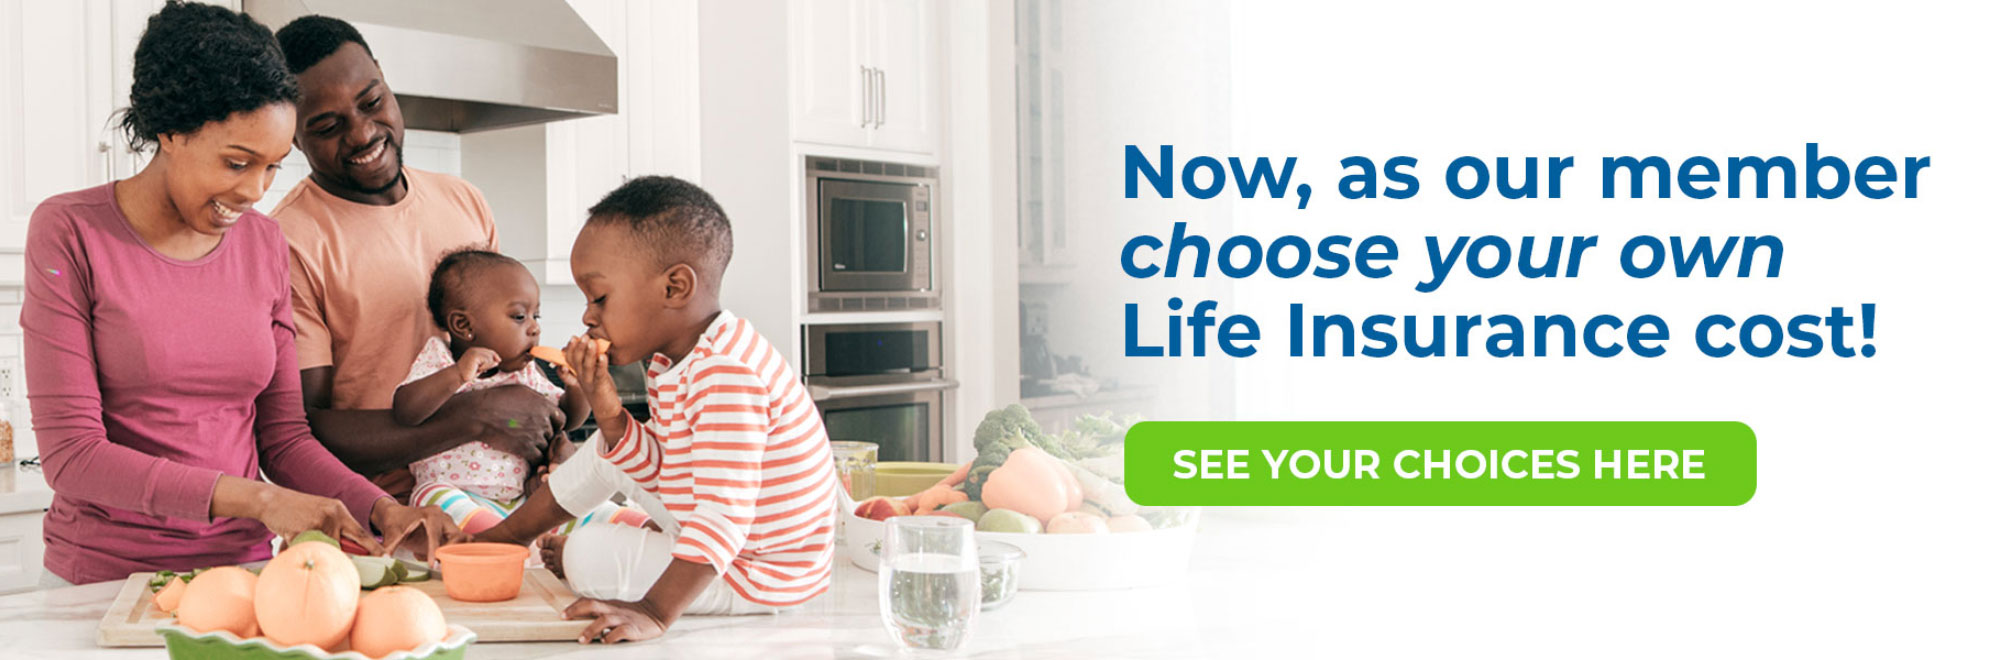 Now as our member, choose your own life insurance cost. View your choices.